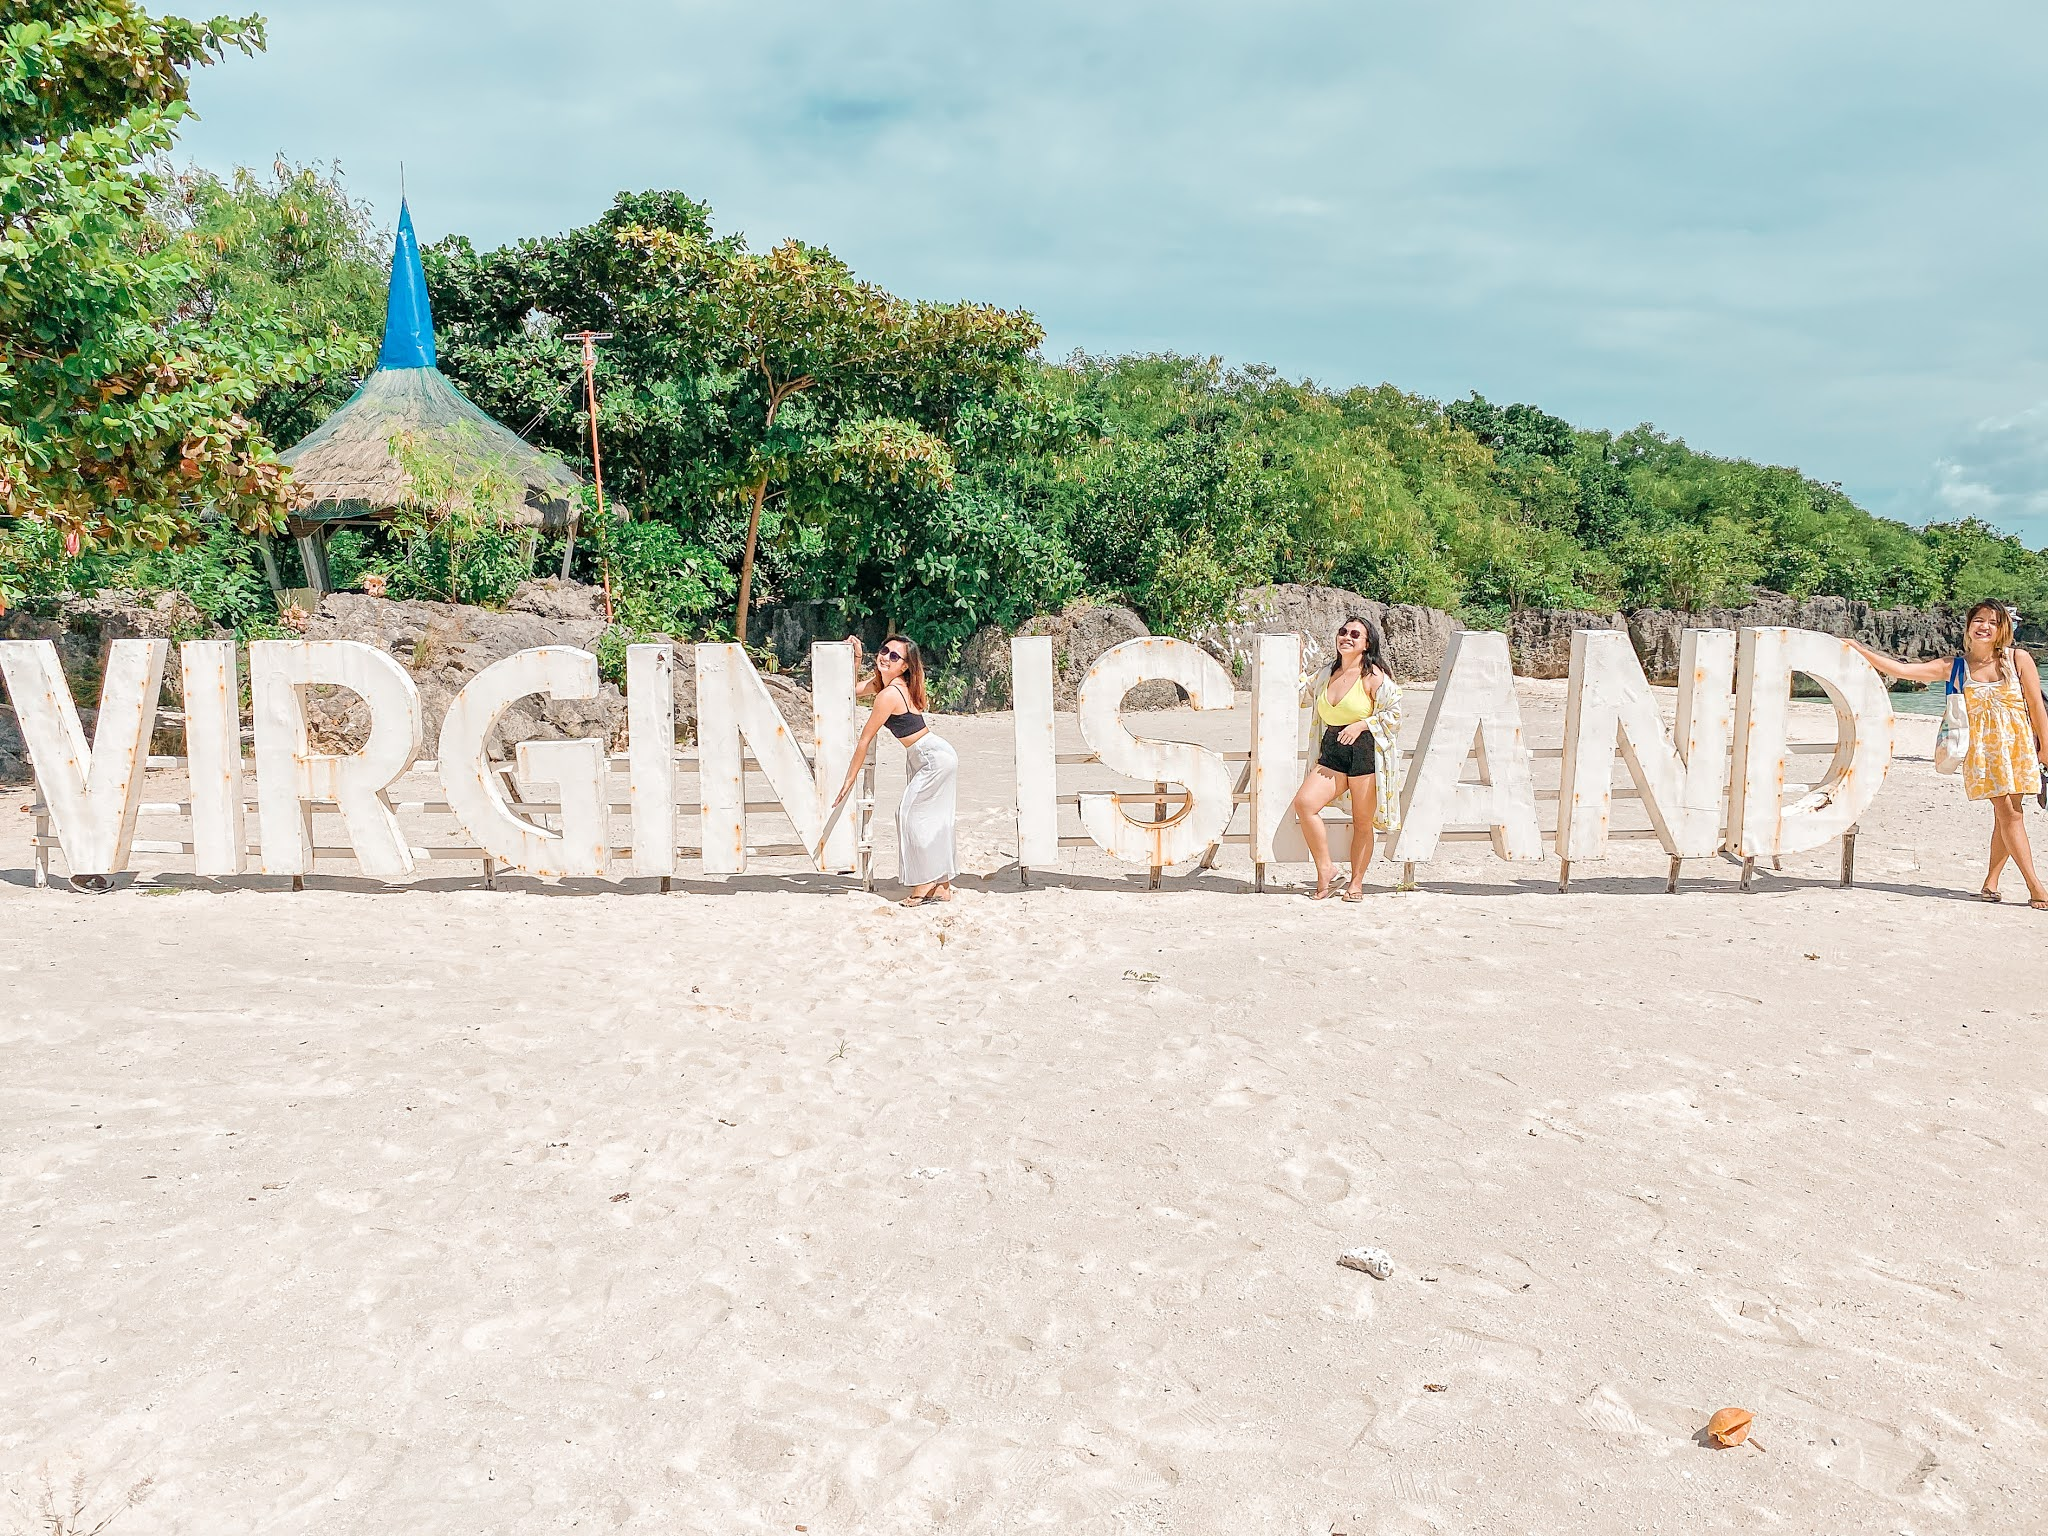 Annual Vacation Tradition in Bantayan Island - 2020 - Virgin Island